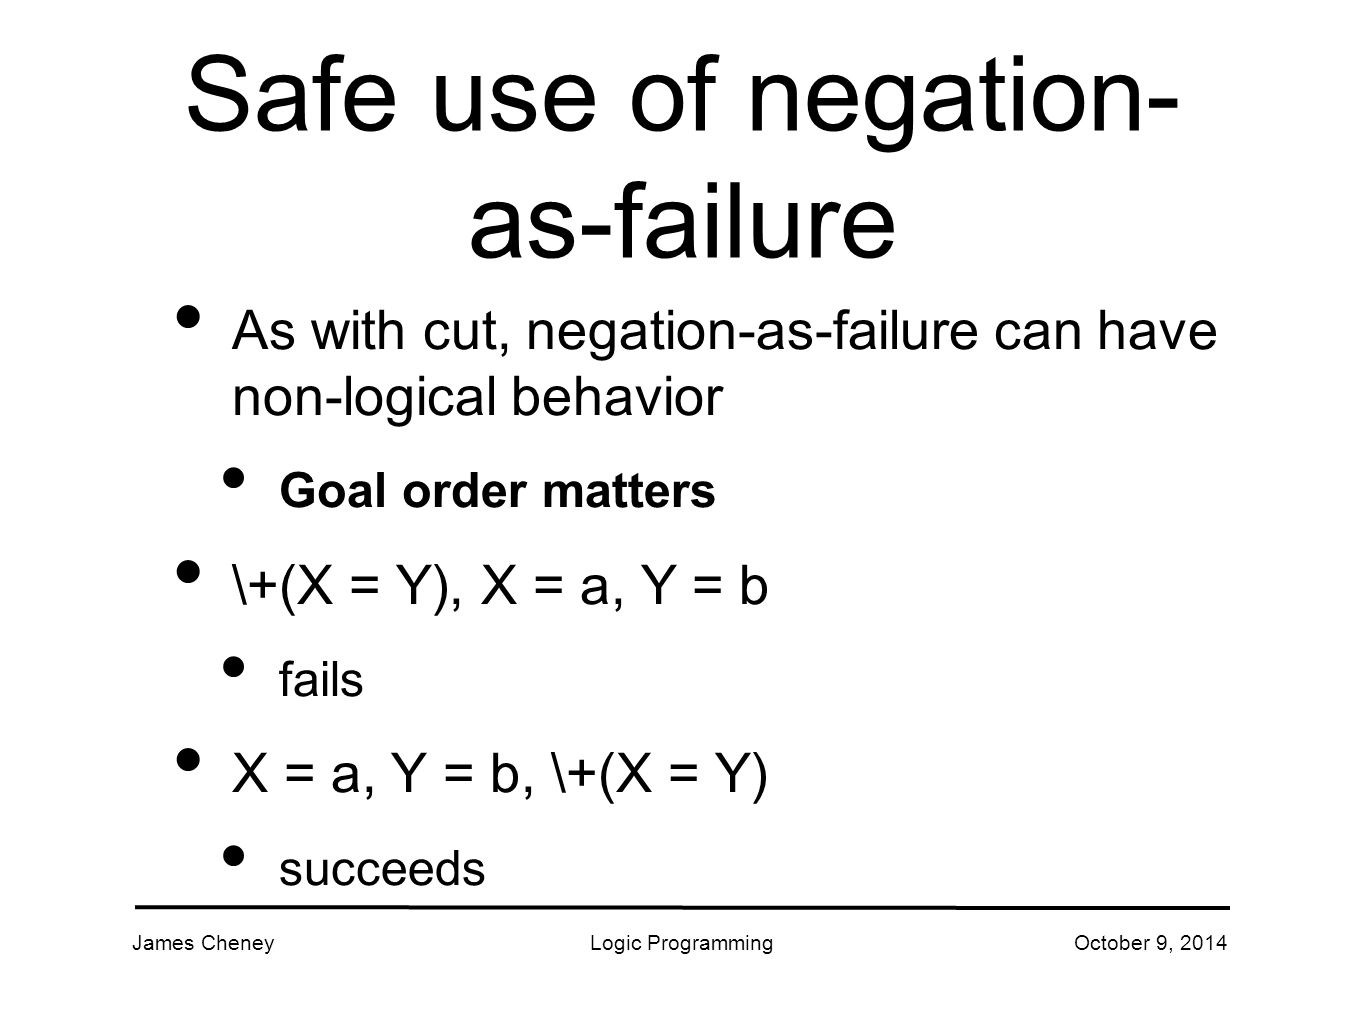 James CheneyLogic ProgrammingOctober 9, 2014 Safe use of negation- as-failure As with cut, negation-as-failure can have non-logical behavior Goal order matters \+(X = Y), X = a, Y = b fails X = a, Y = b, \+(X = Y) succeeds